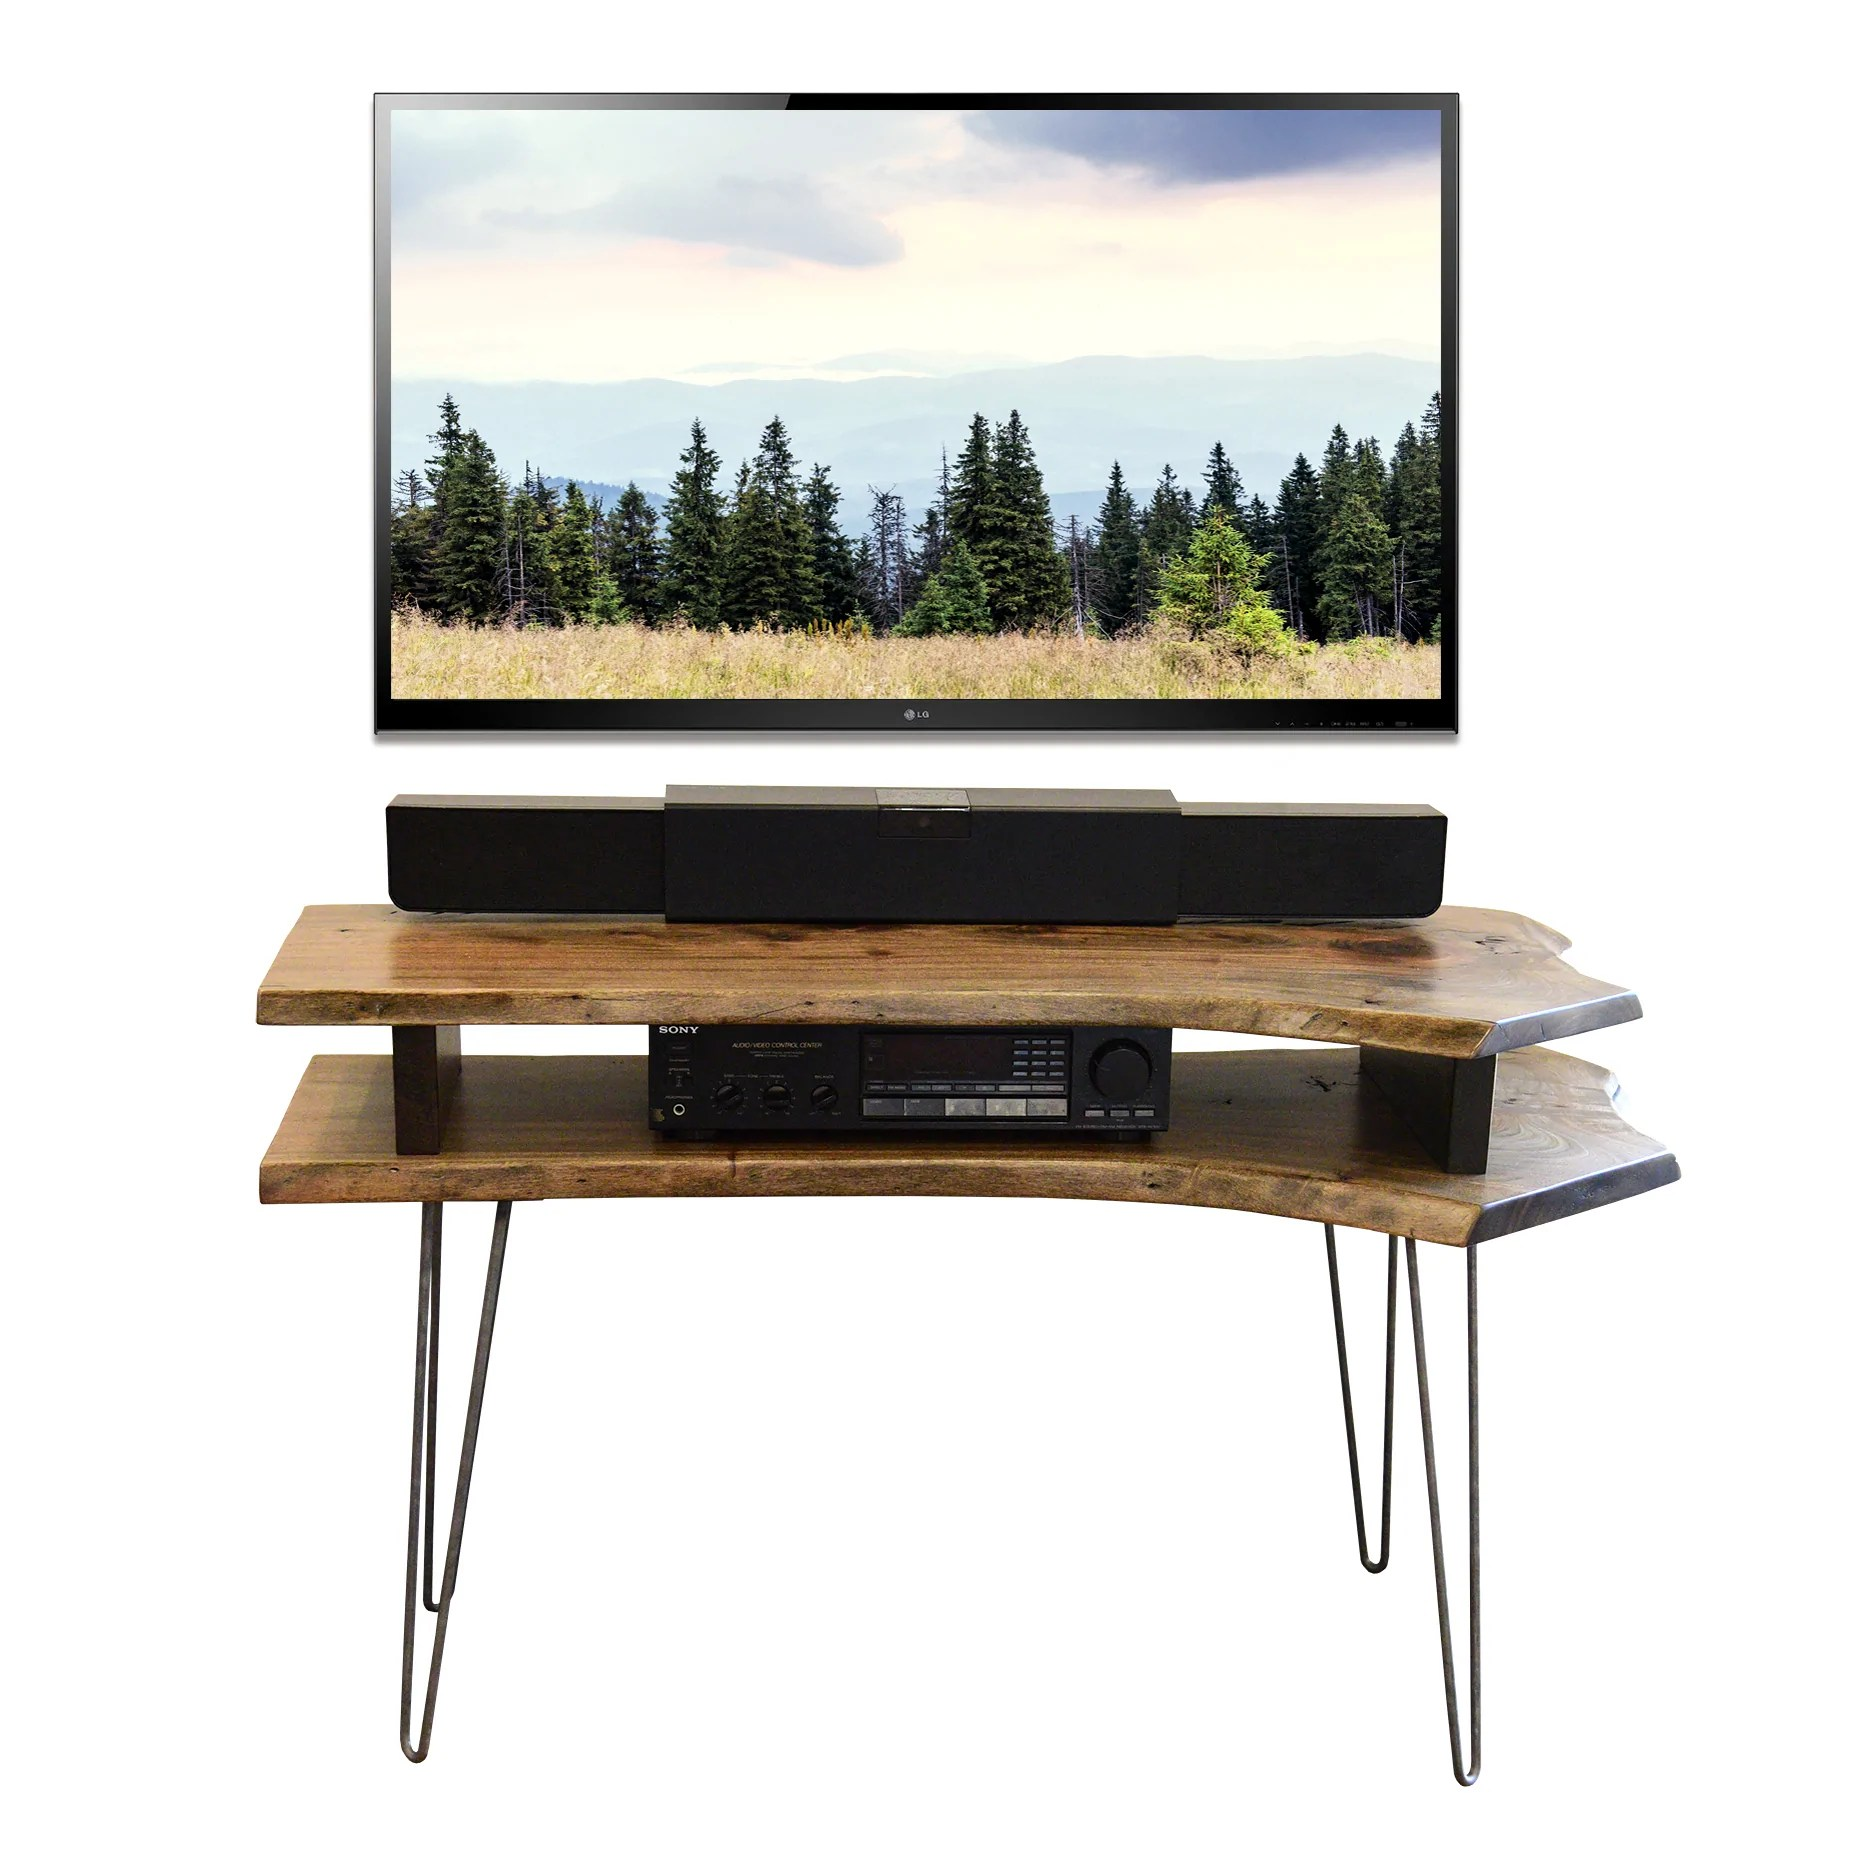 Gorgeous Live Edge Slab Mid Century Tv Stand Live Edge Slab Mid Century Tv Stand Woodwaves Mid Century Tv Stand Plans Mid Century Tv Stand Near Me houzz-03 Mid Century Tv Stand